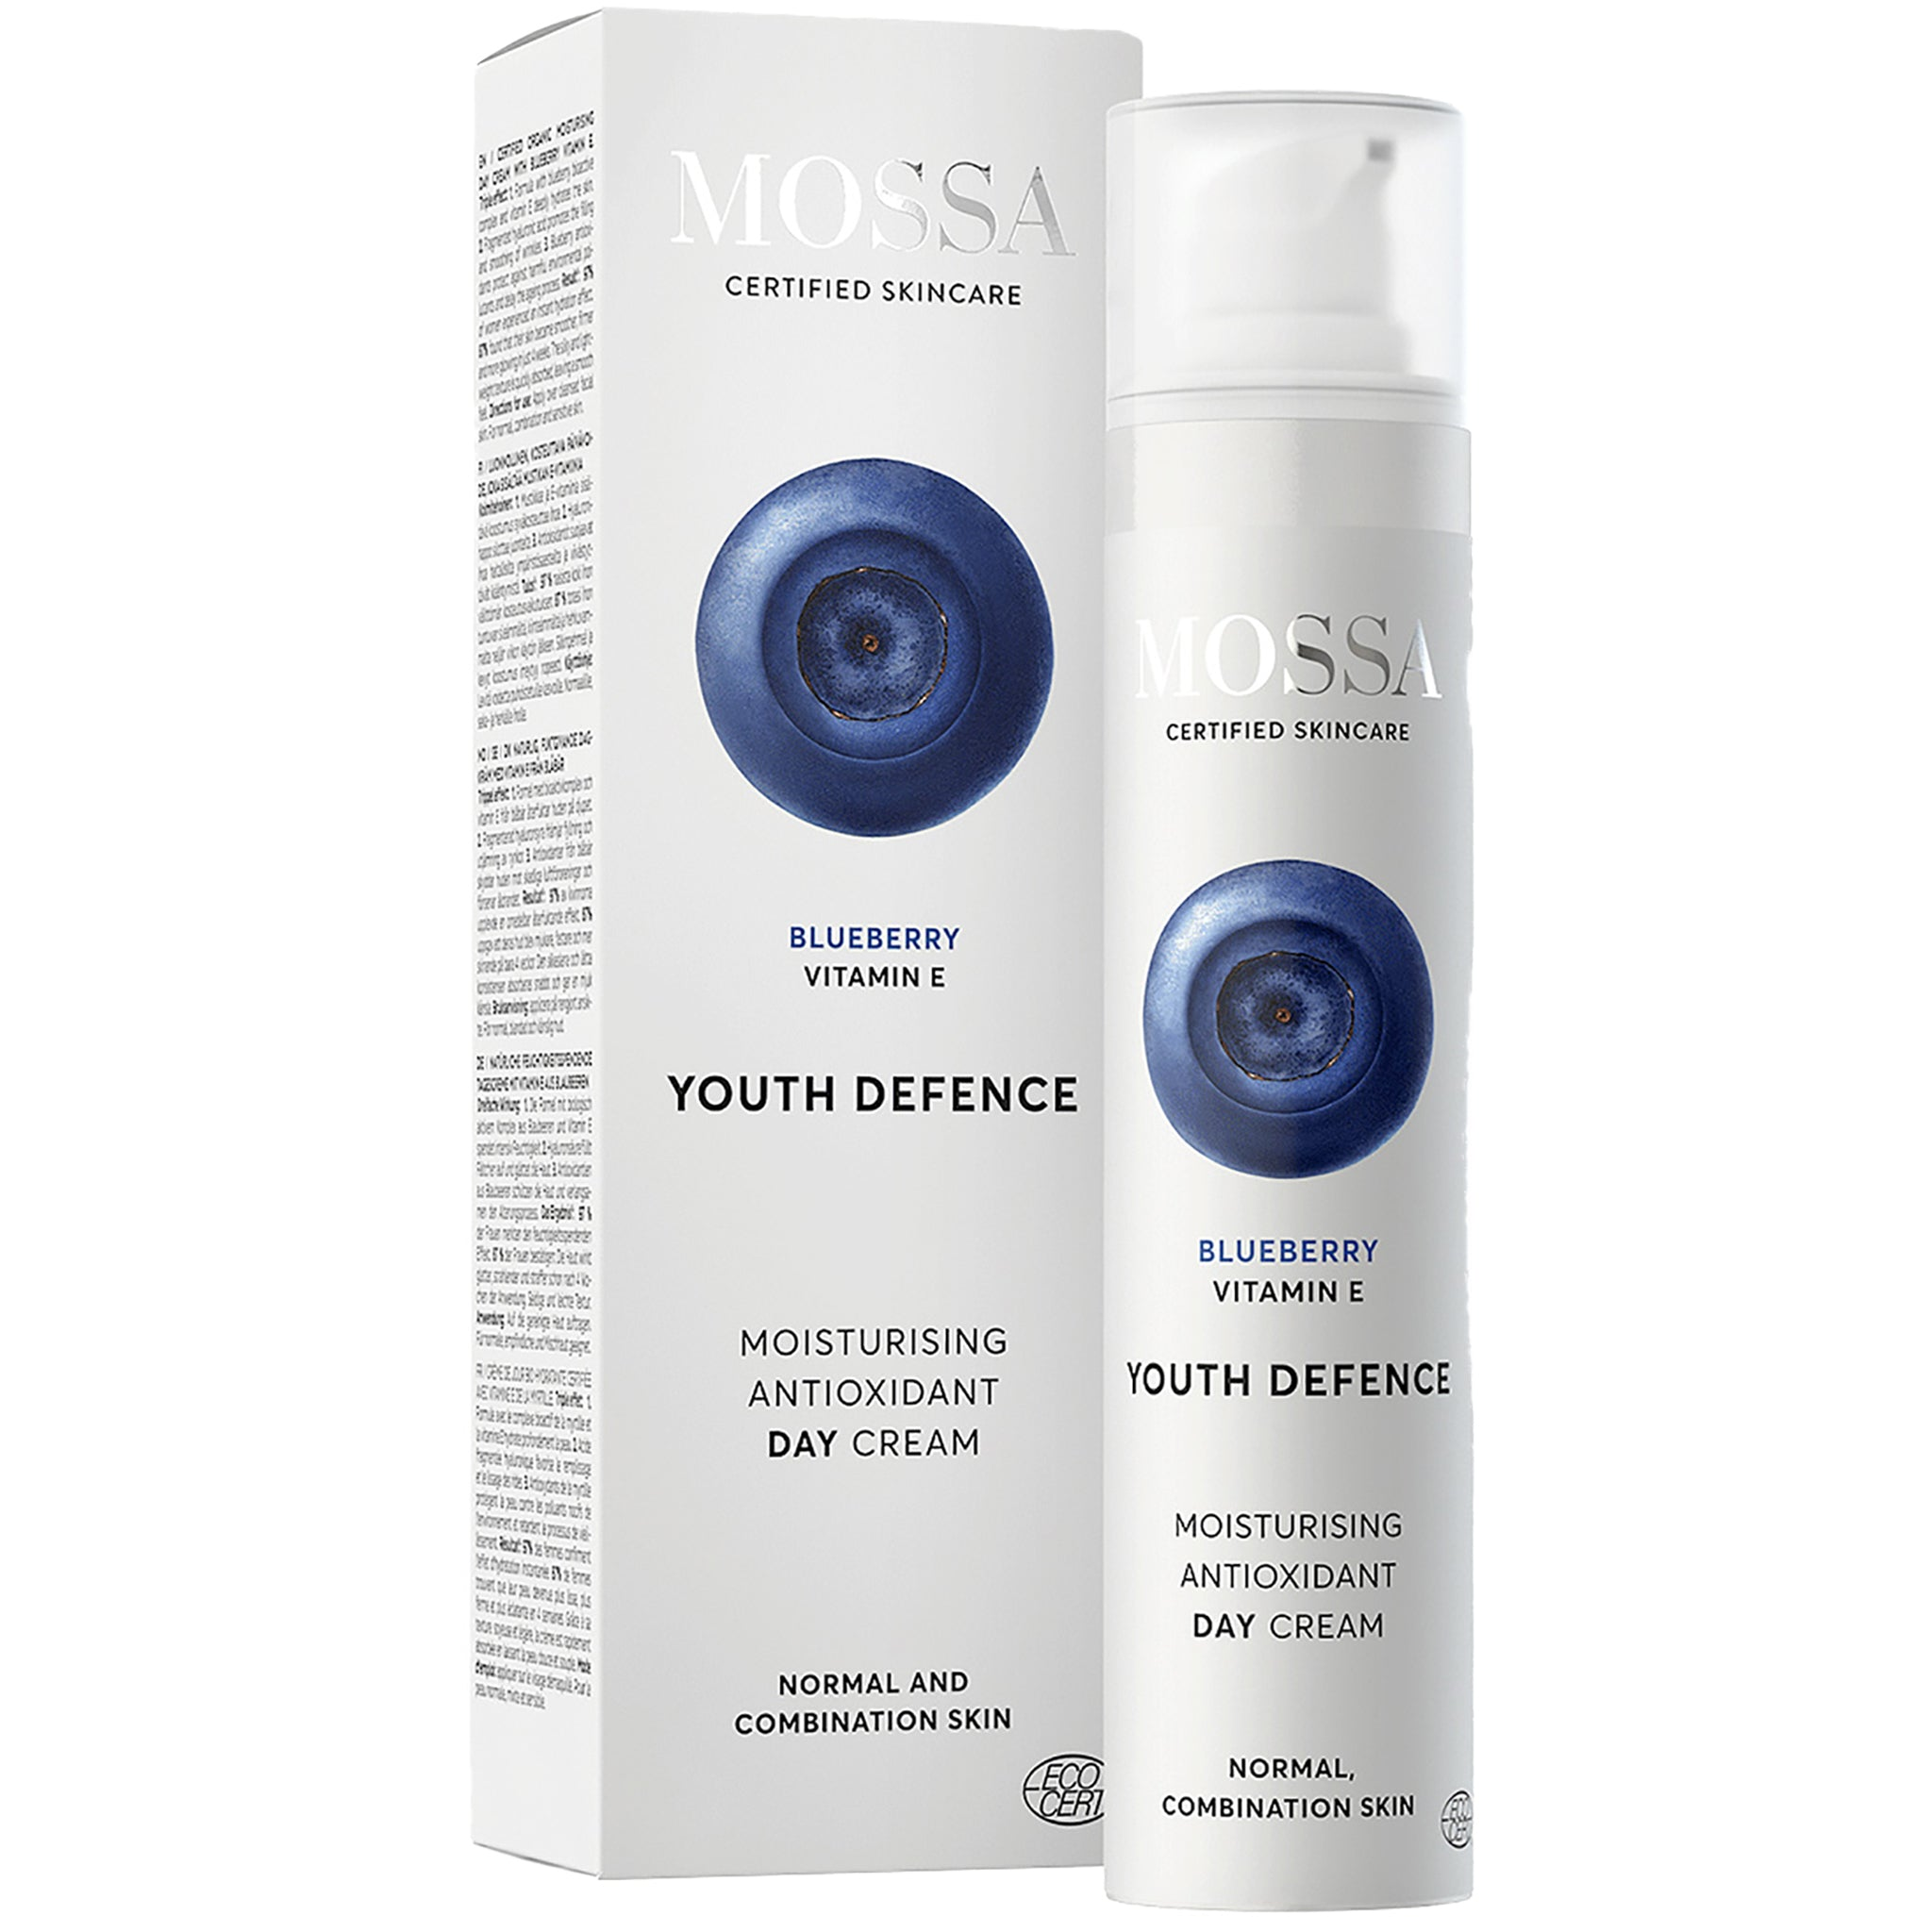 Youth Defence Moisturising Antioxidant Day Cream